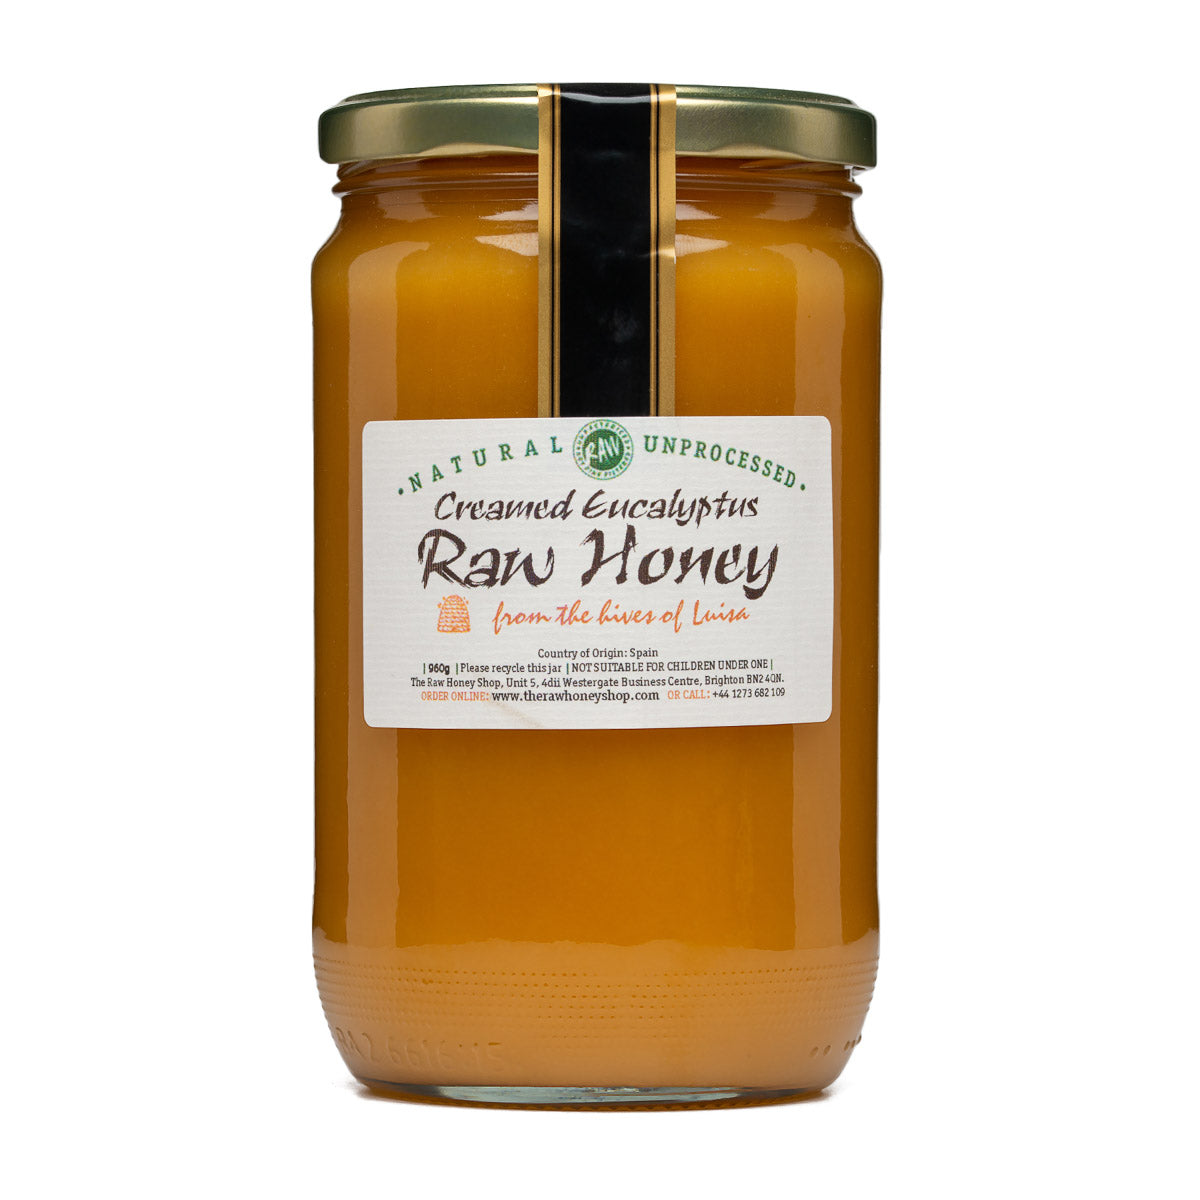 Raw Honey - Creamed Eucalyptus 960g